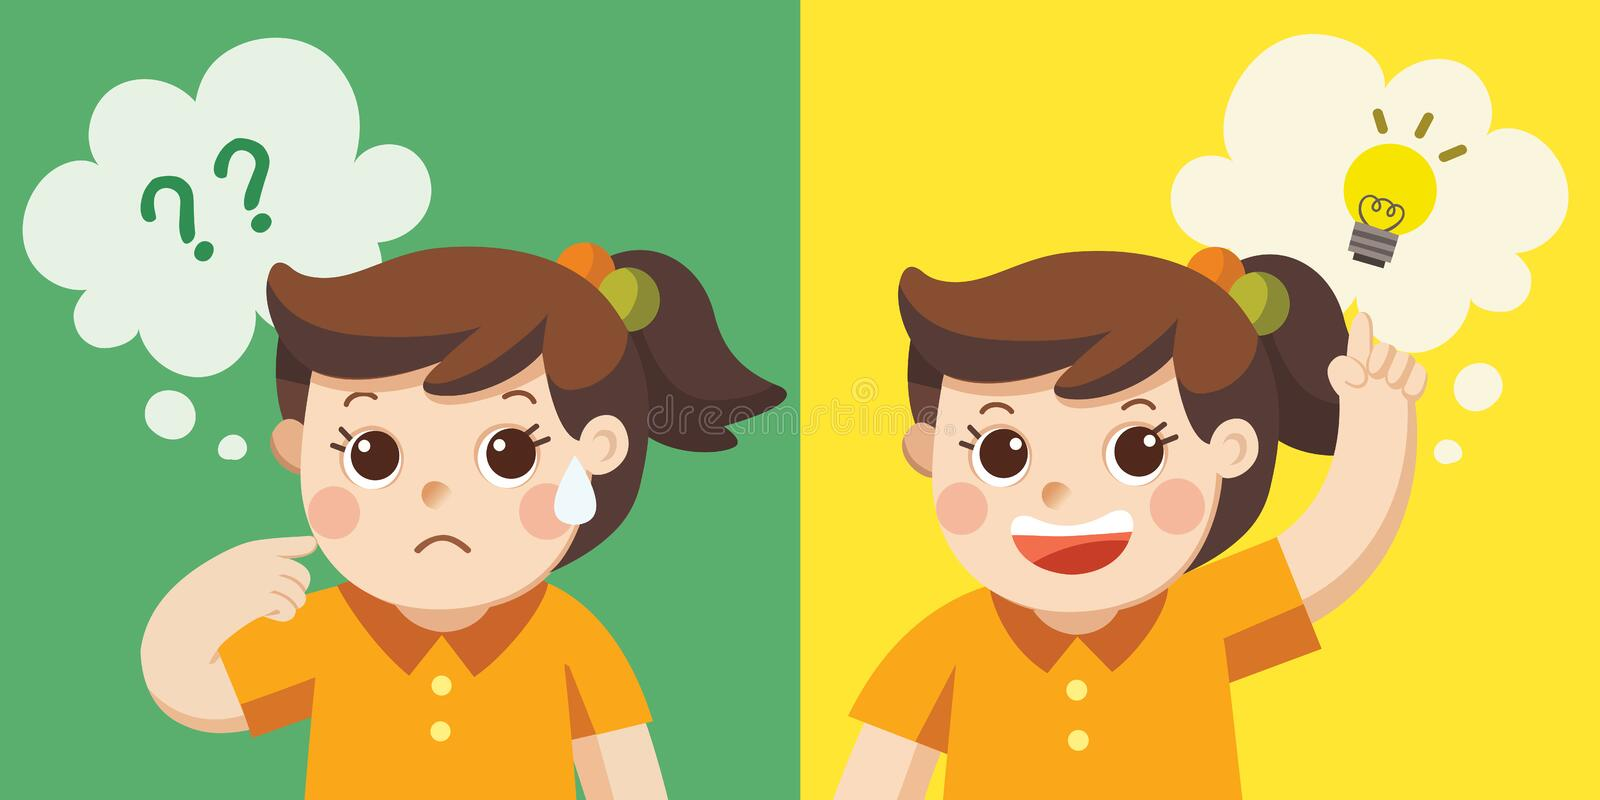 A Cute Girl thinking. Think not, do not understand, Think out. vector illustration